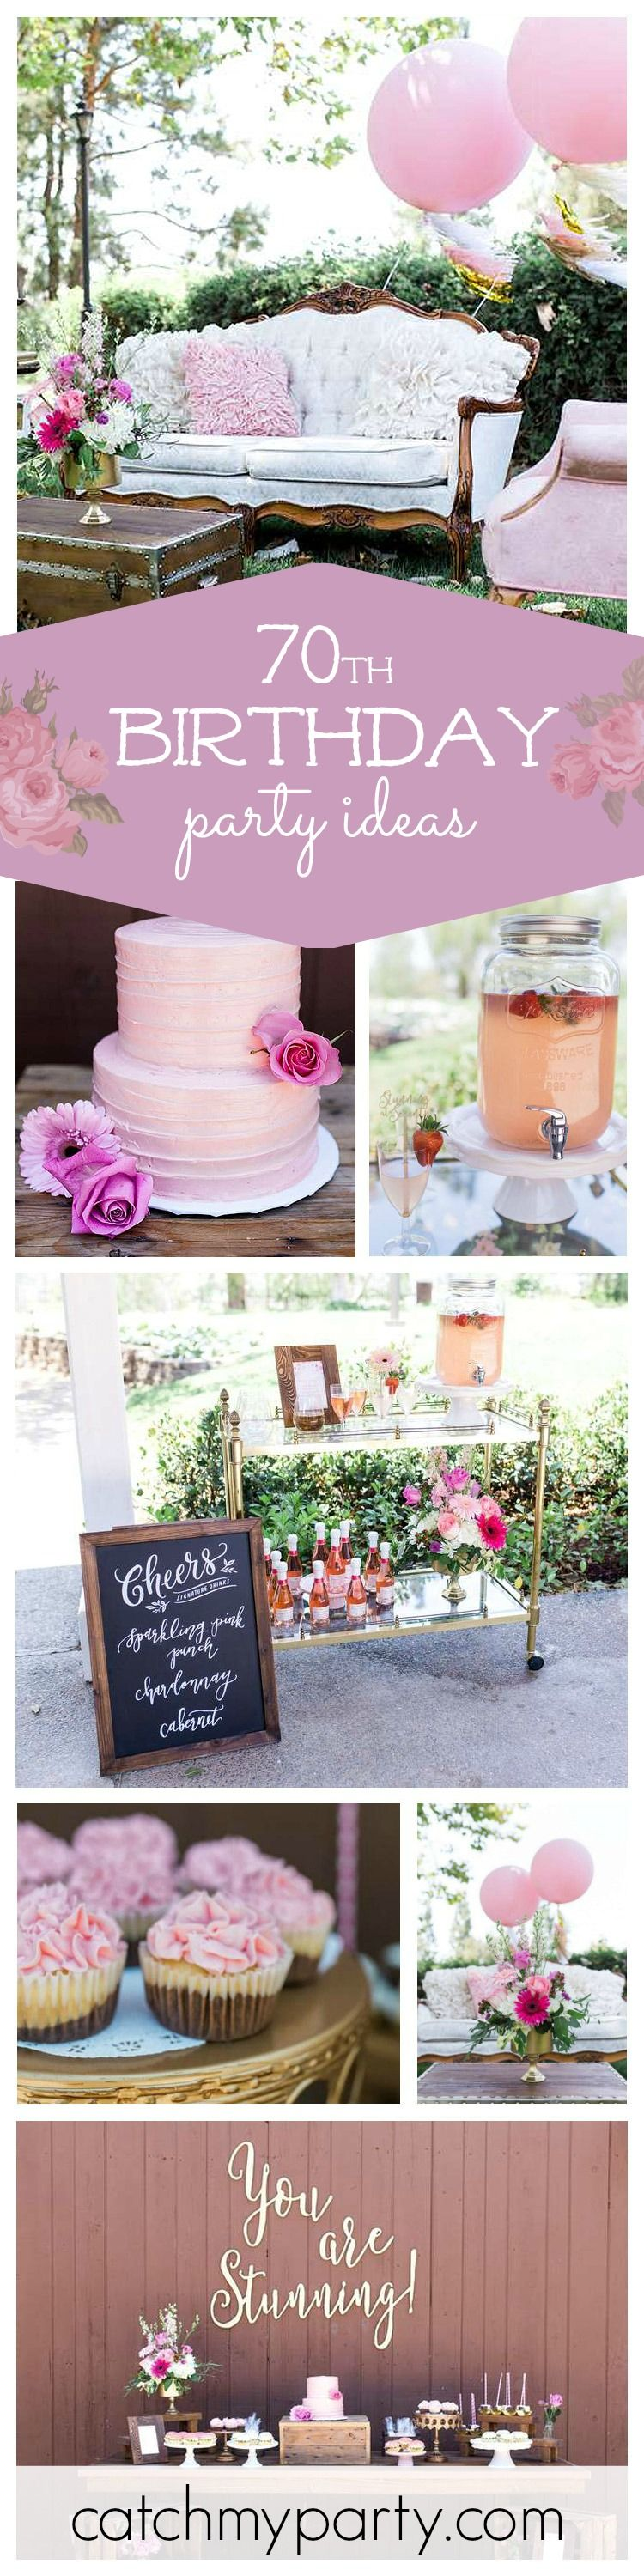 stunning th birthday garden party with so many ideas gorgeous for hosting  that also best decorations men images in rh pinterest